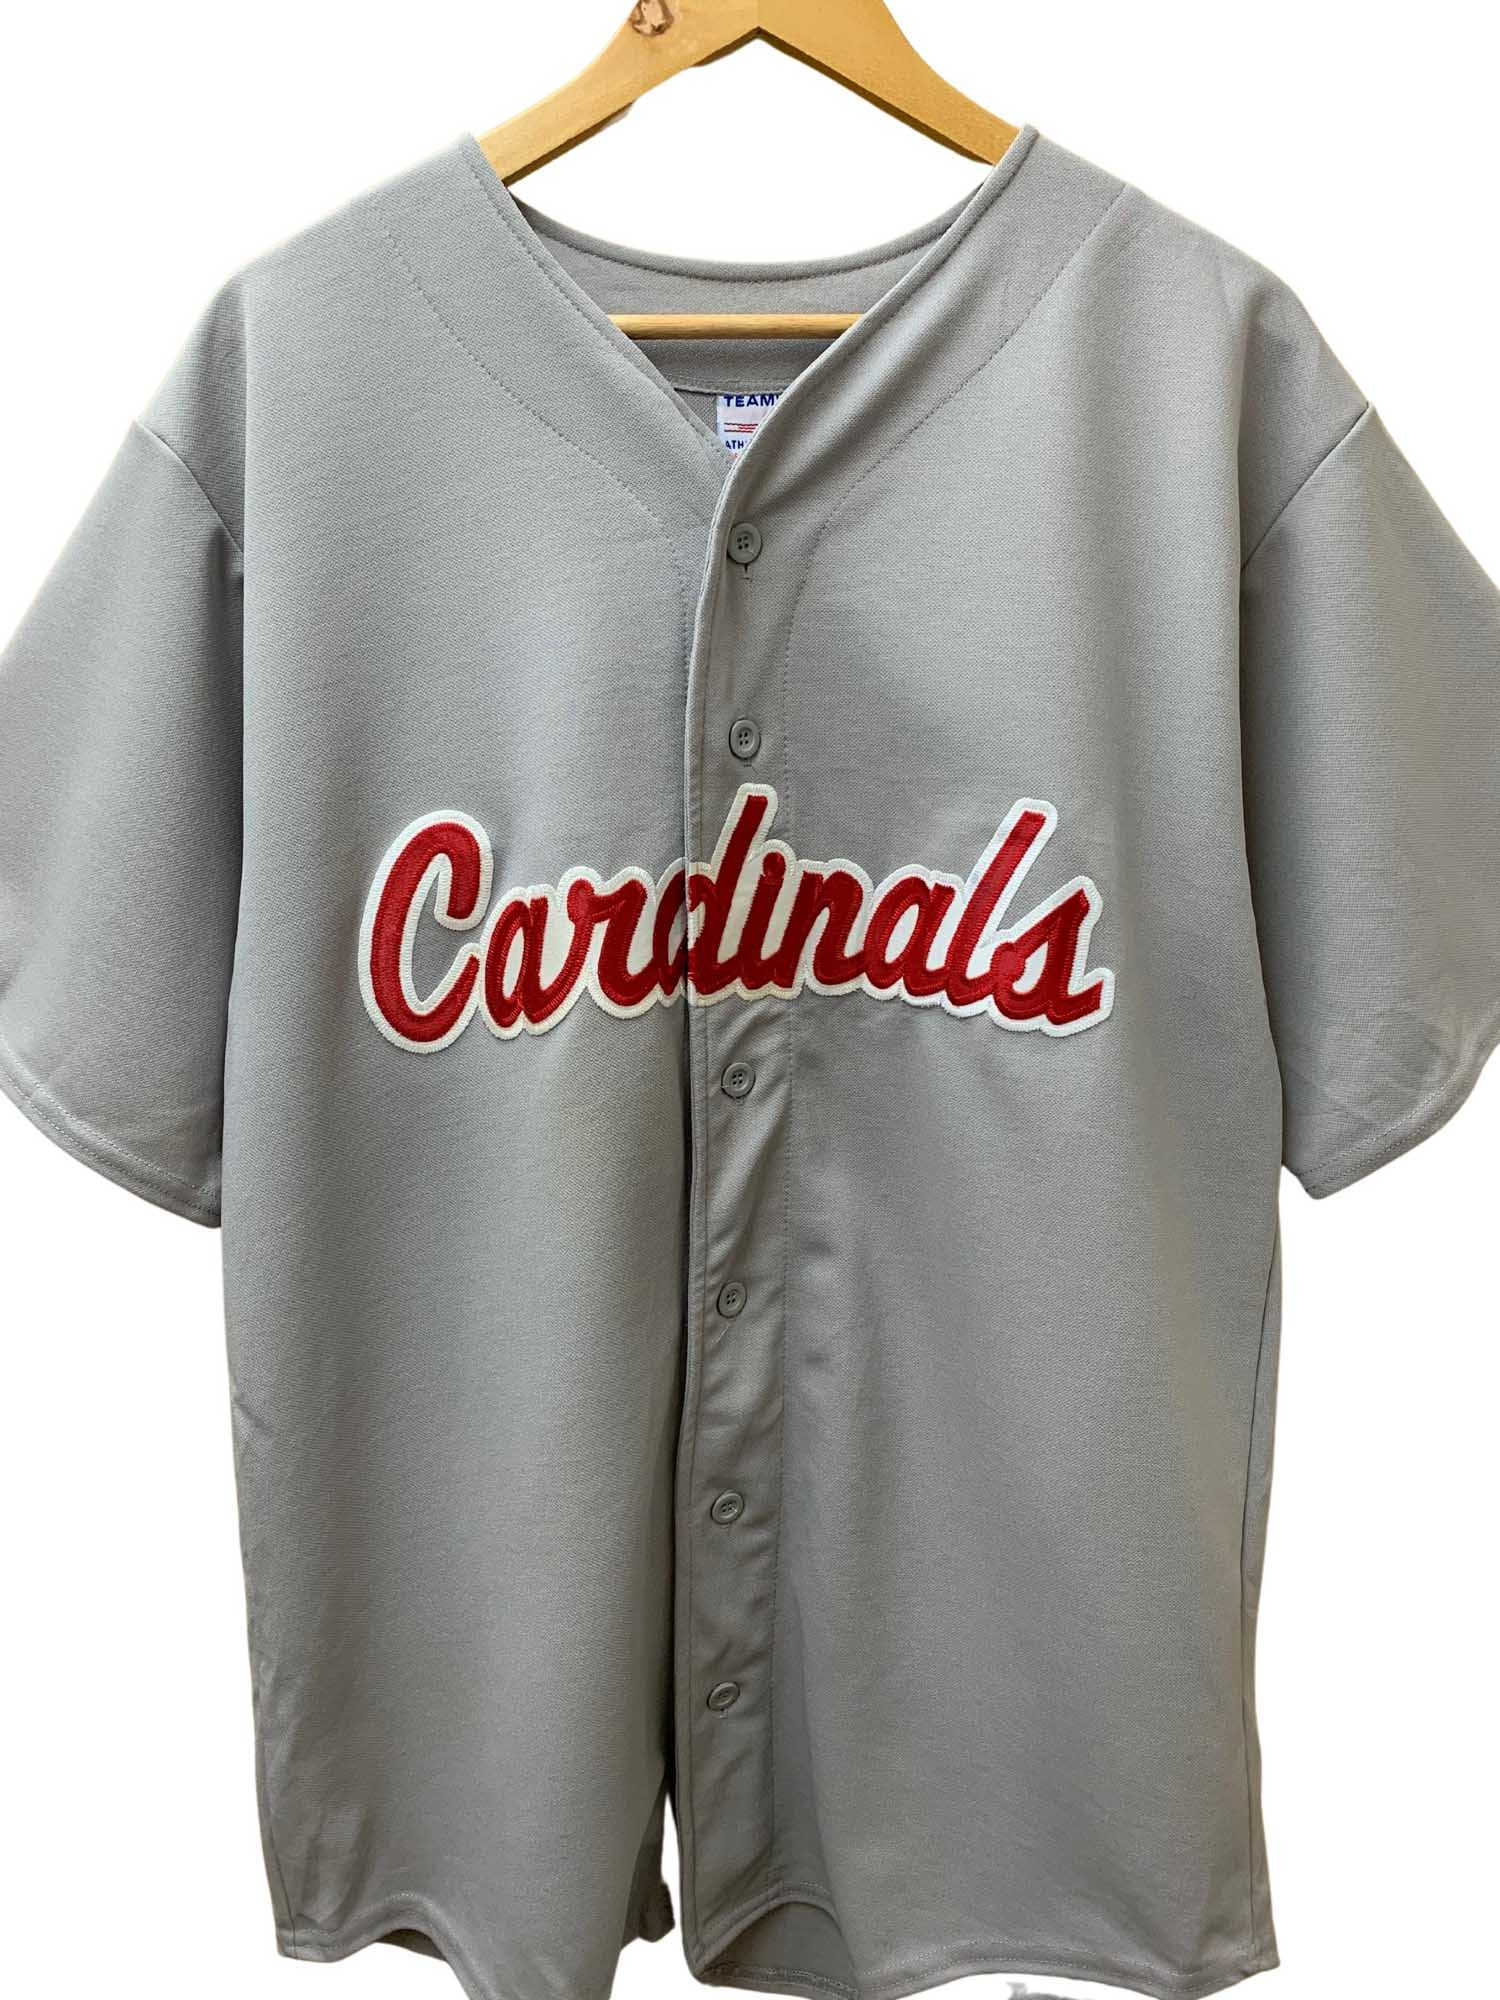 ARIZONA CARDINALS BASEBALL JERSEY